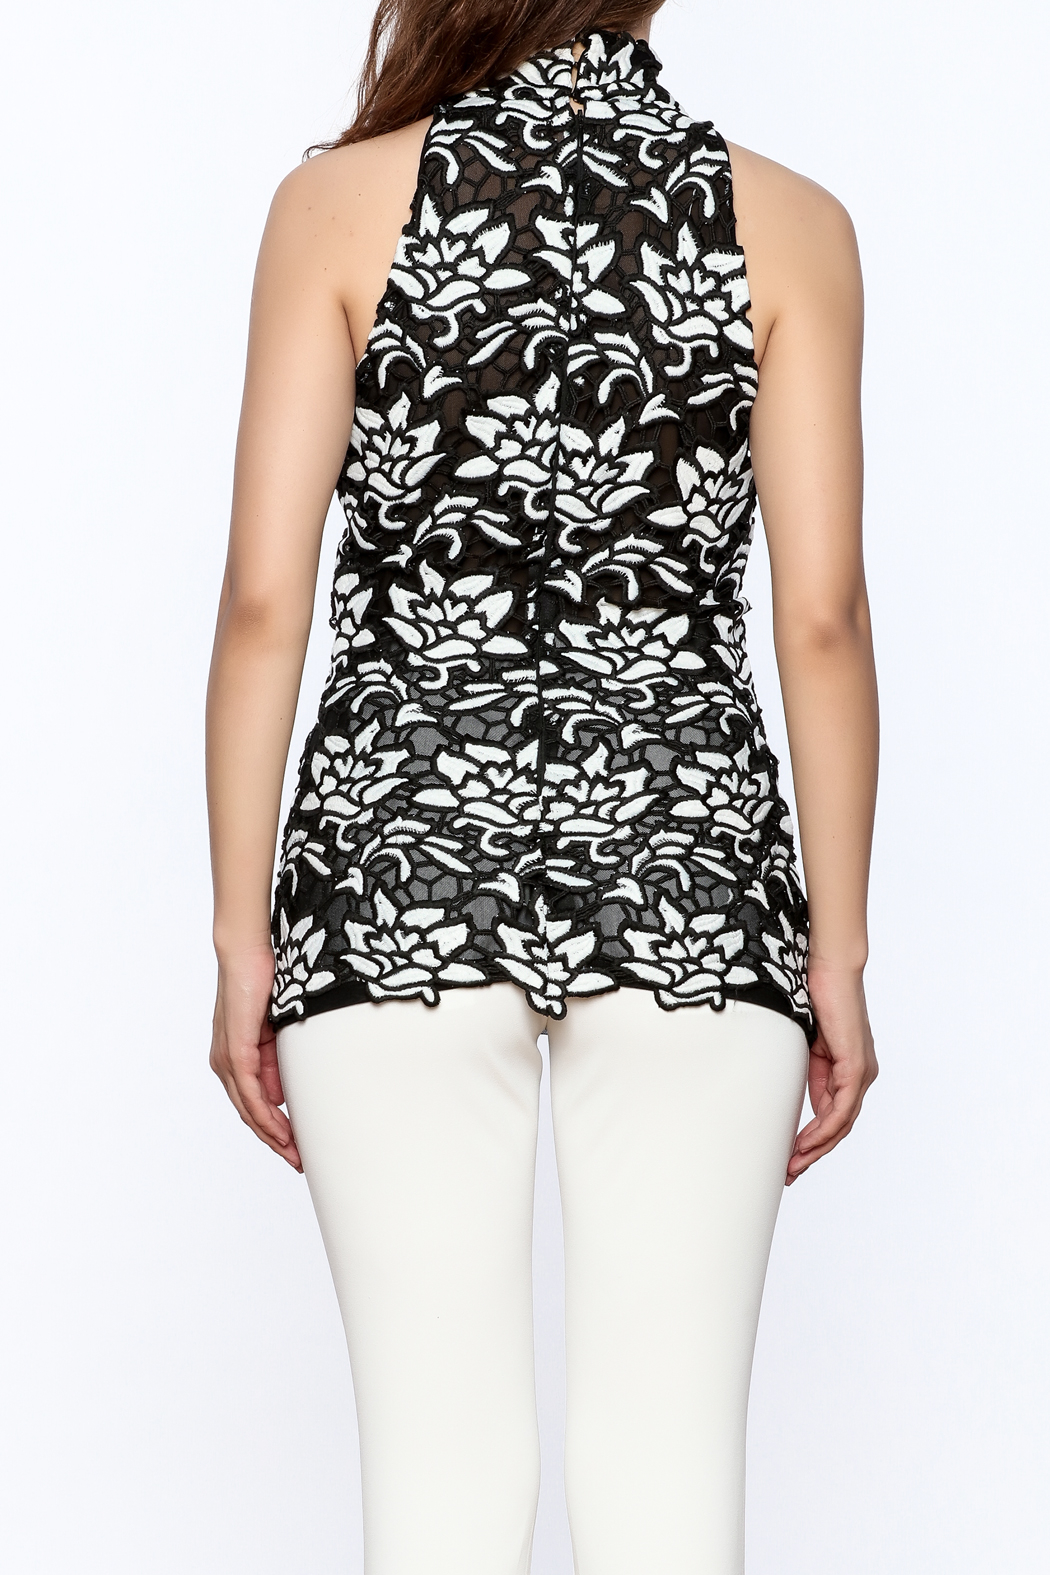 Julian Chang Black Floral Sleeveless Top - Back Cropped Image